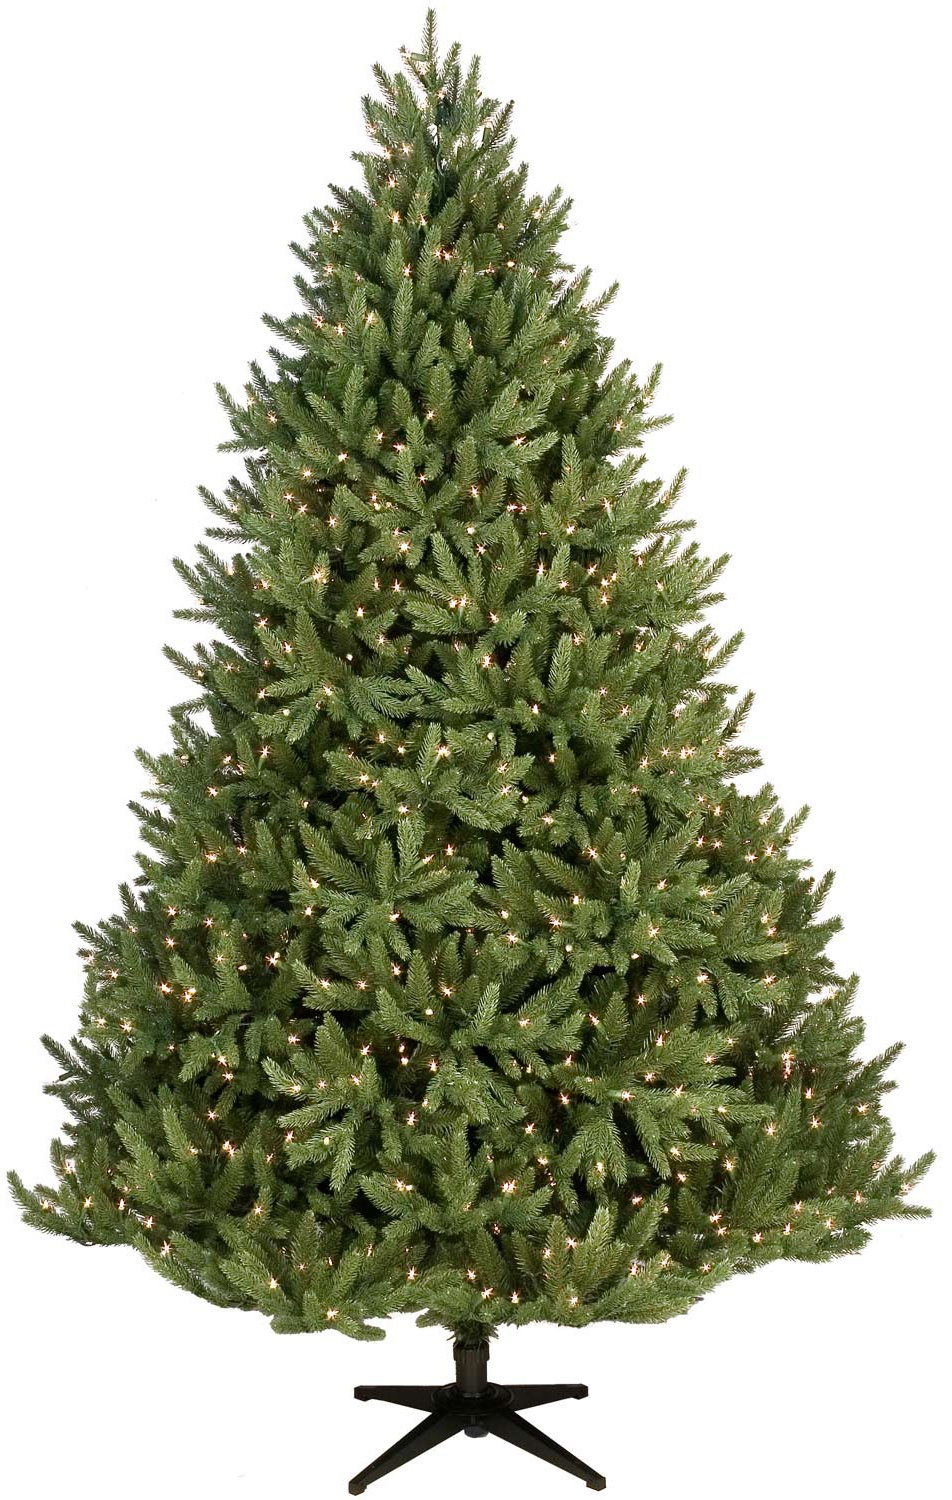 bethlehem lighting christmas trees. Noble Fir Prelit Christmas Tree With Incandescent Lights Bethlehem Lighting Trees I